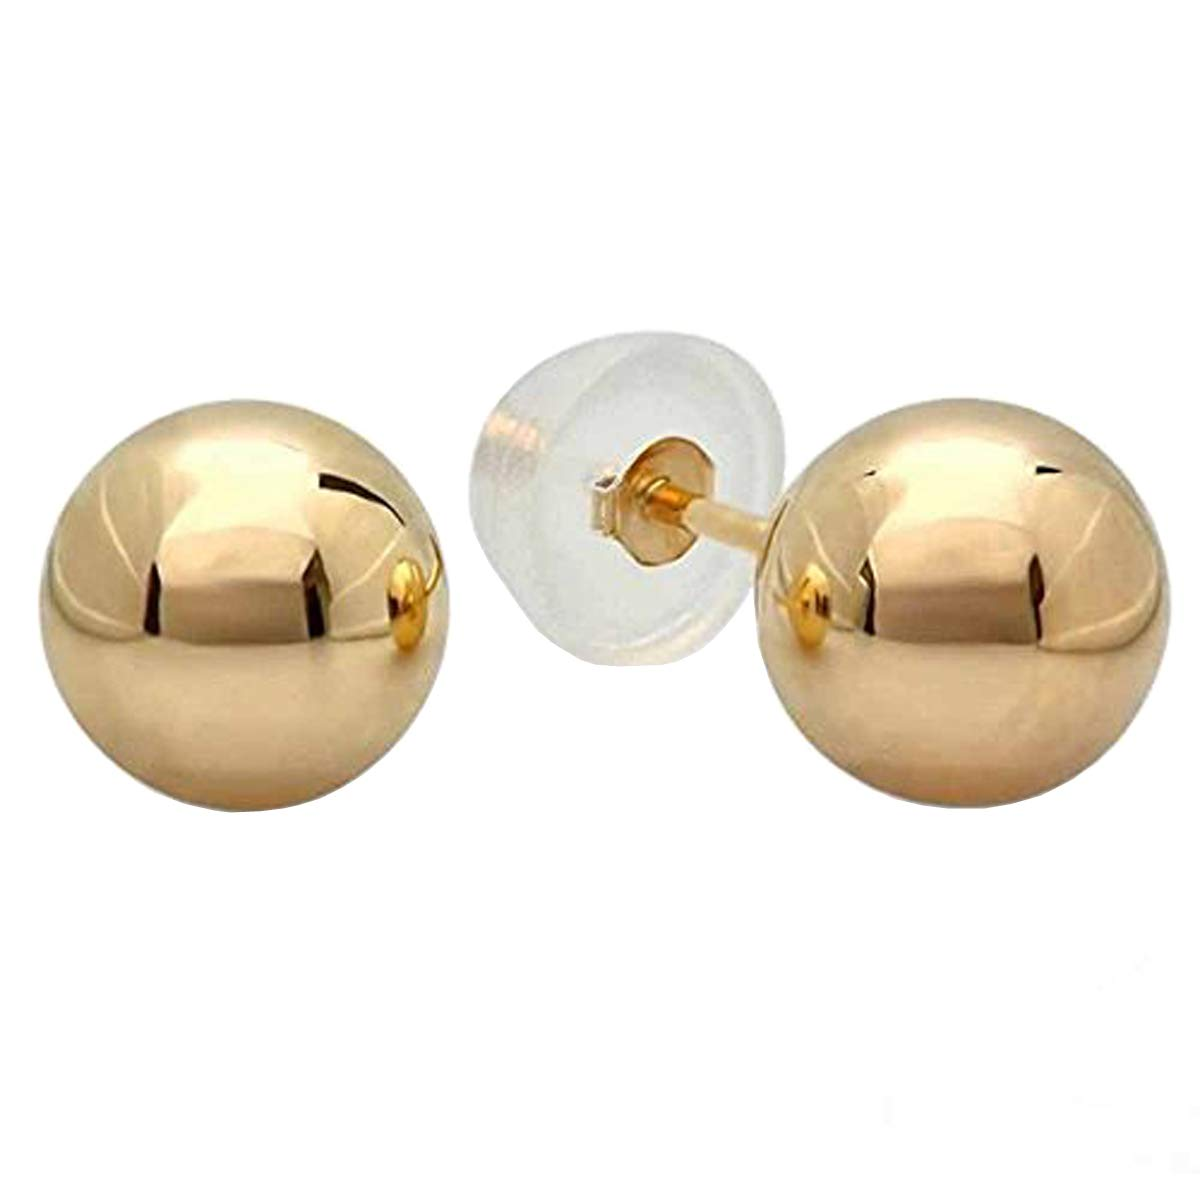 Dazzlingrock Collection 10k Ball 6mm Stud Earrings with Silicone covered Gold Pushbacks Yellow Gold